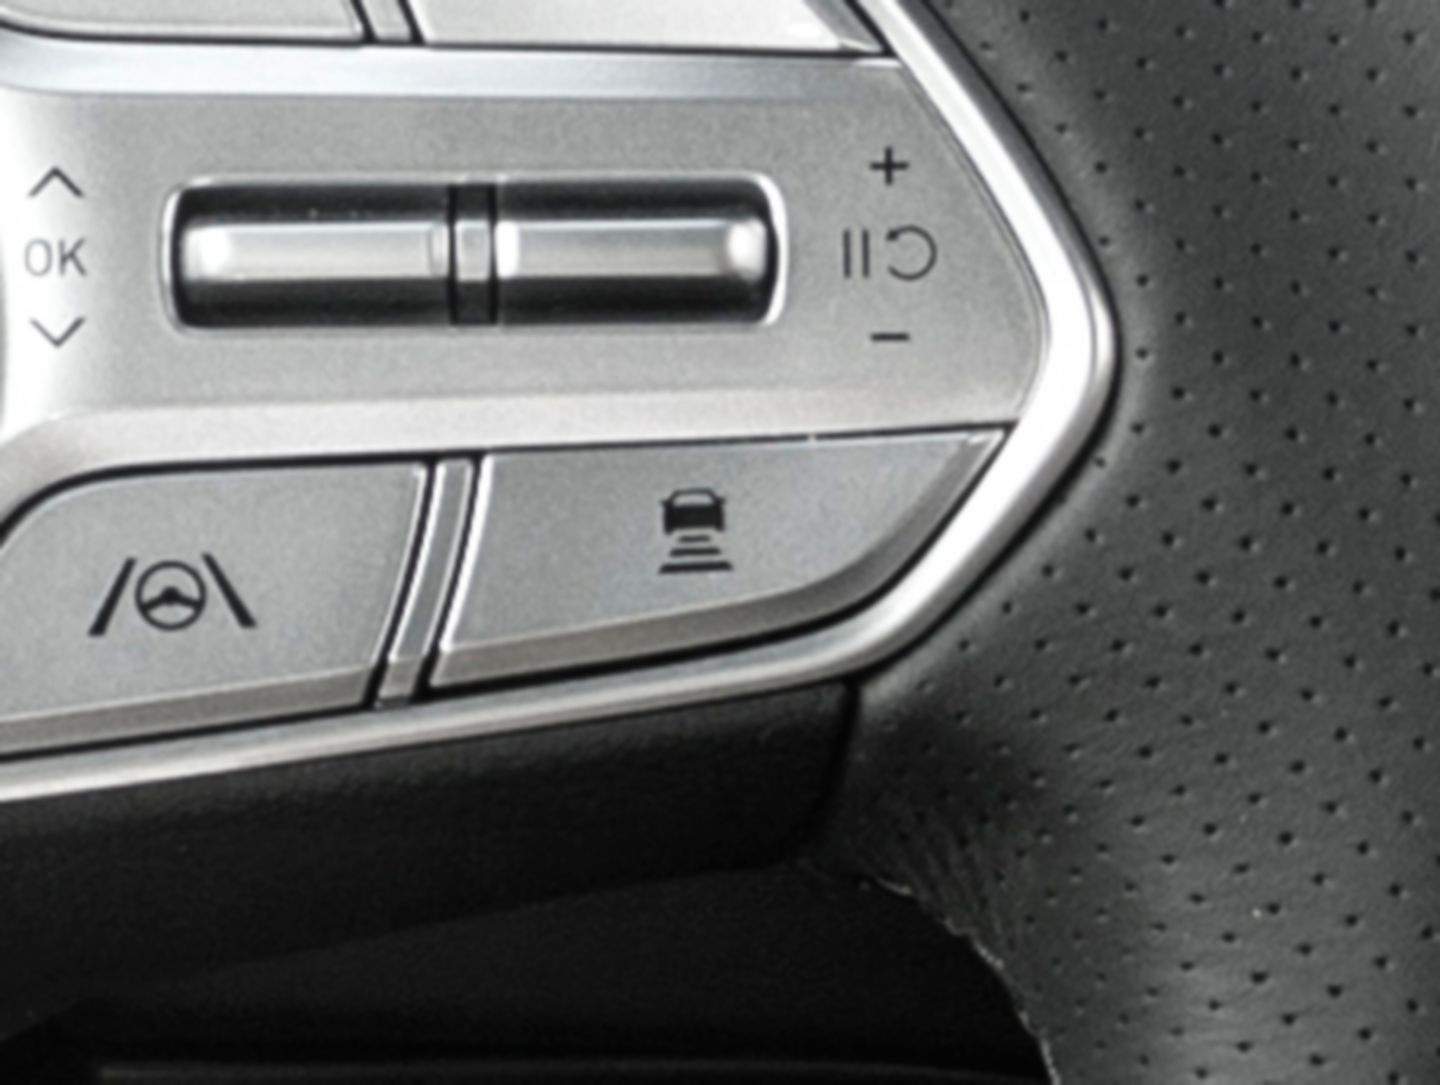 A close up image at the control buttons on the sporty steering wheel of the new Hyundai Santa Fe SUV.